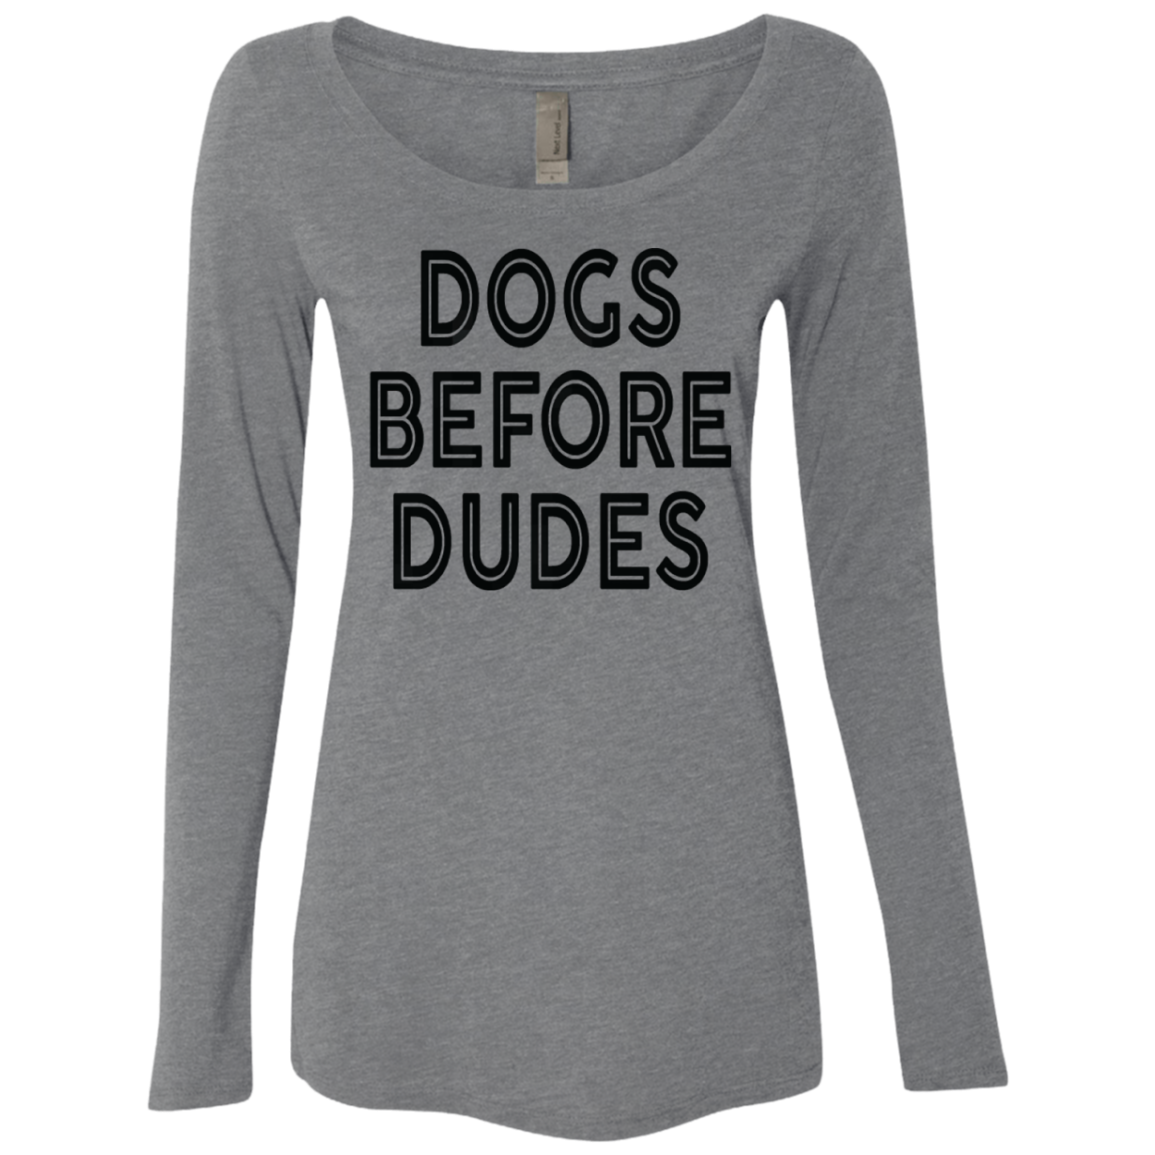 Dogs Before Dudes Women's Long Sleeve Tee